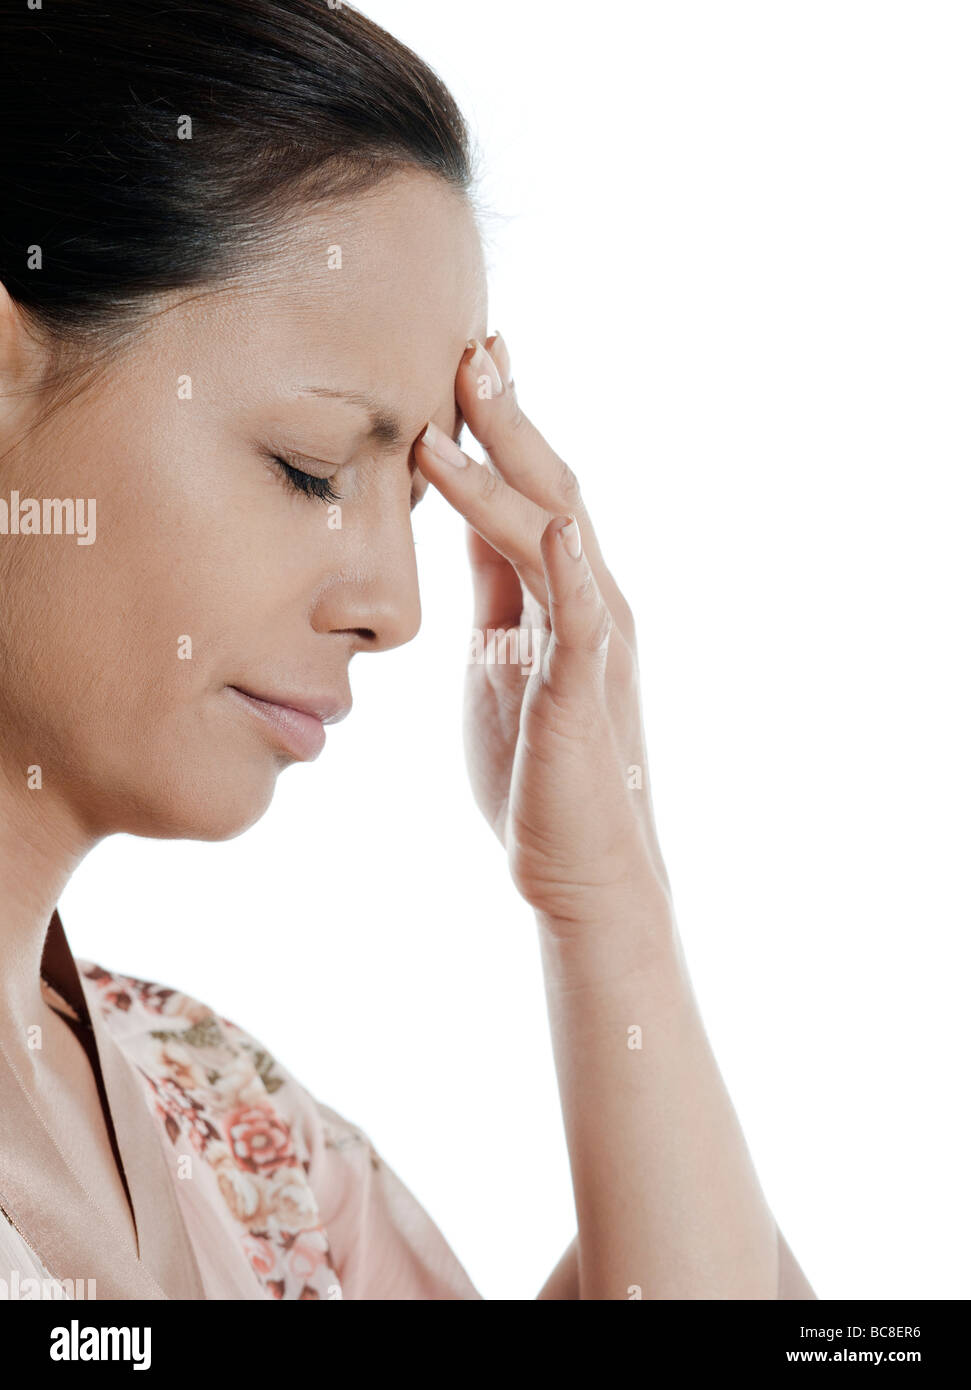 headache woman asian  on isolated white background - Stock Image